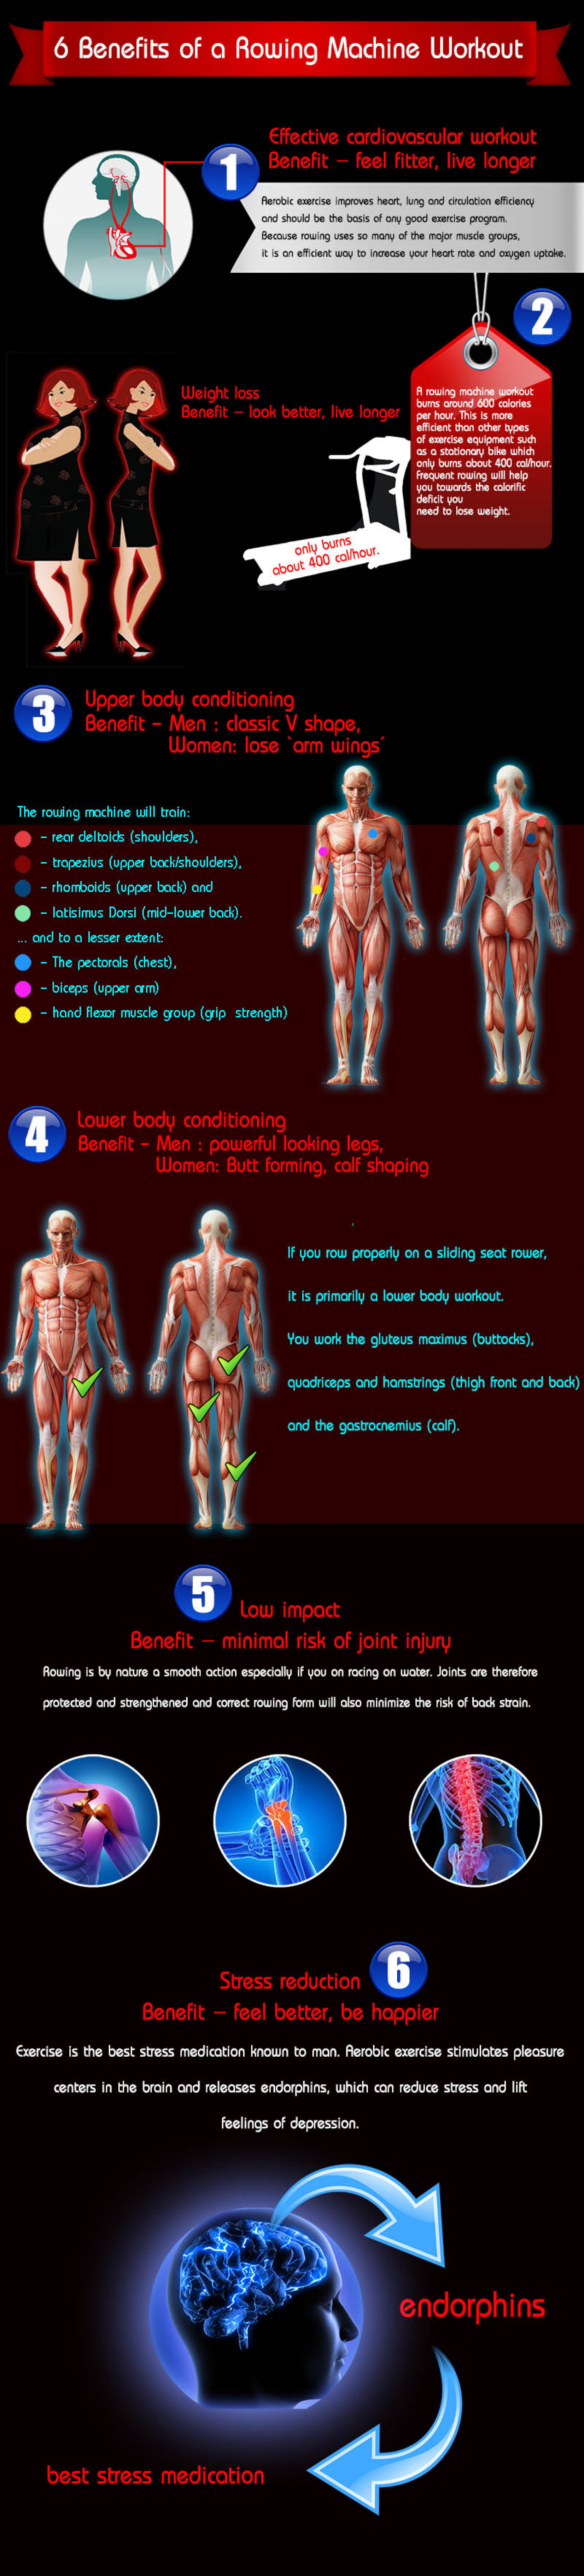 6 Benefits of a Rowing Machine Workout Infographic